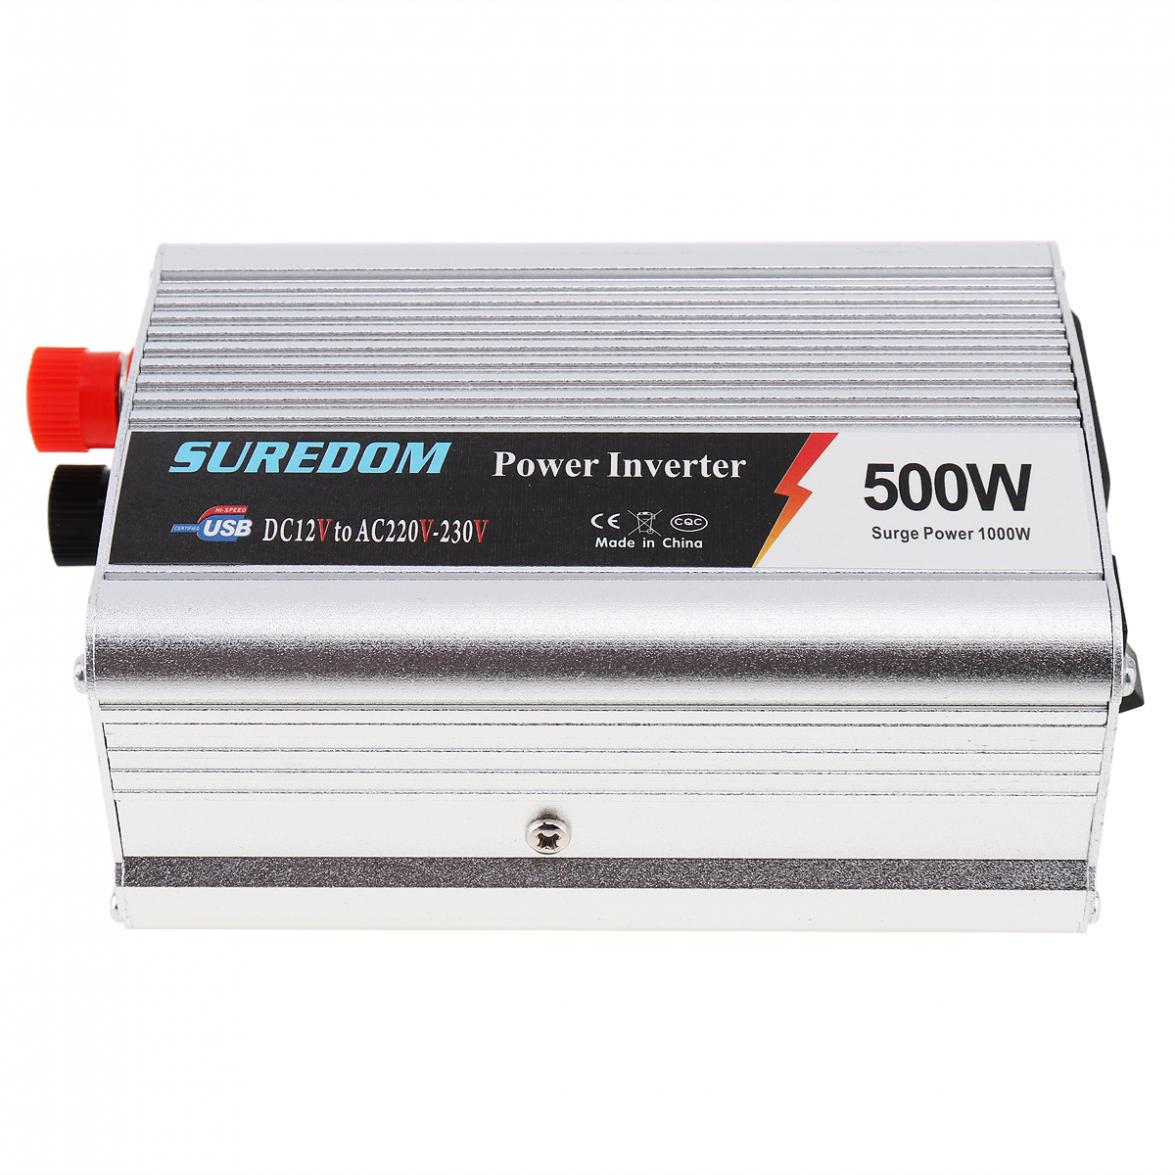 500W Auto-Inverter DC 12V 24V zu AC 220V 110V USB Auto Power Inverter Adapter ladegerät Spannung Transformator Peak Power 1000W